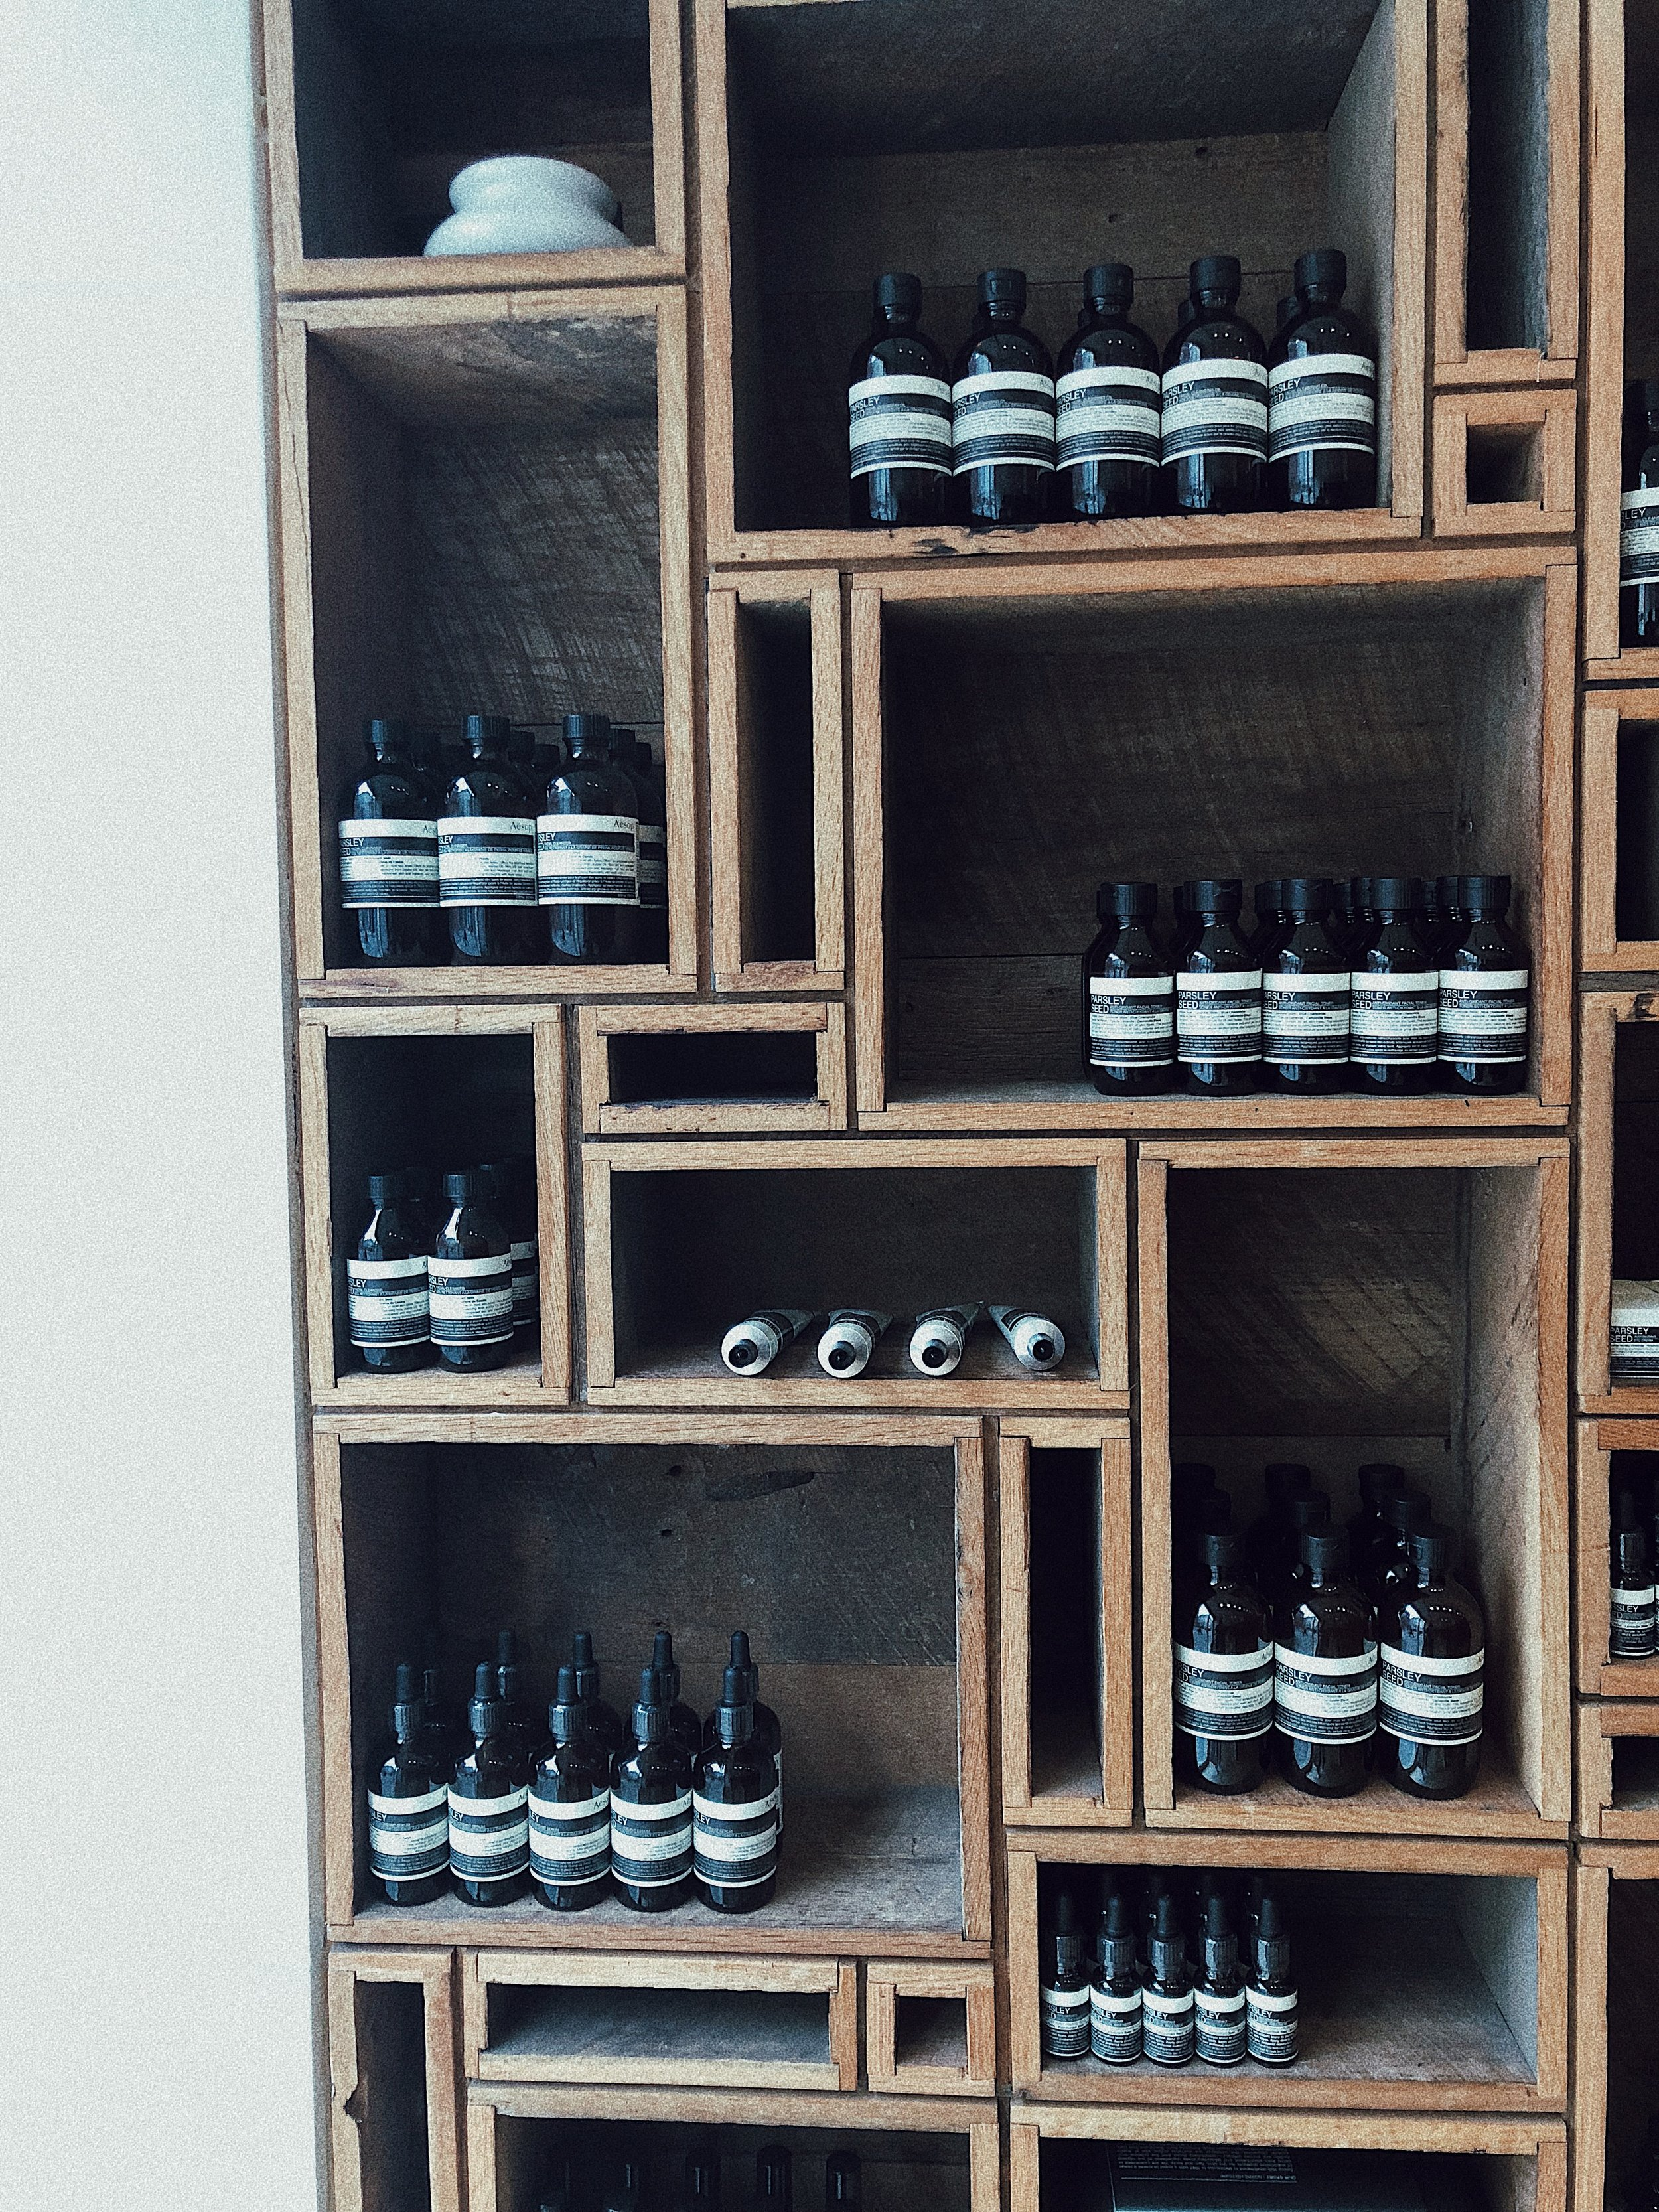 Aesop in Soho was also a stop with Nico. We're all about quality skincare, am I right?